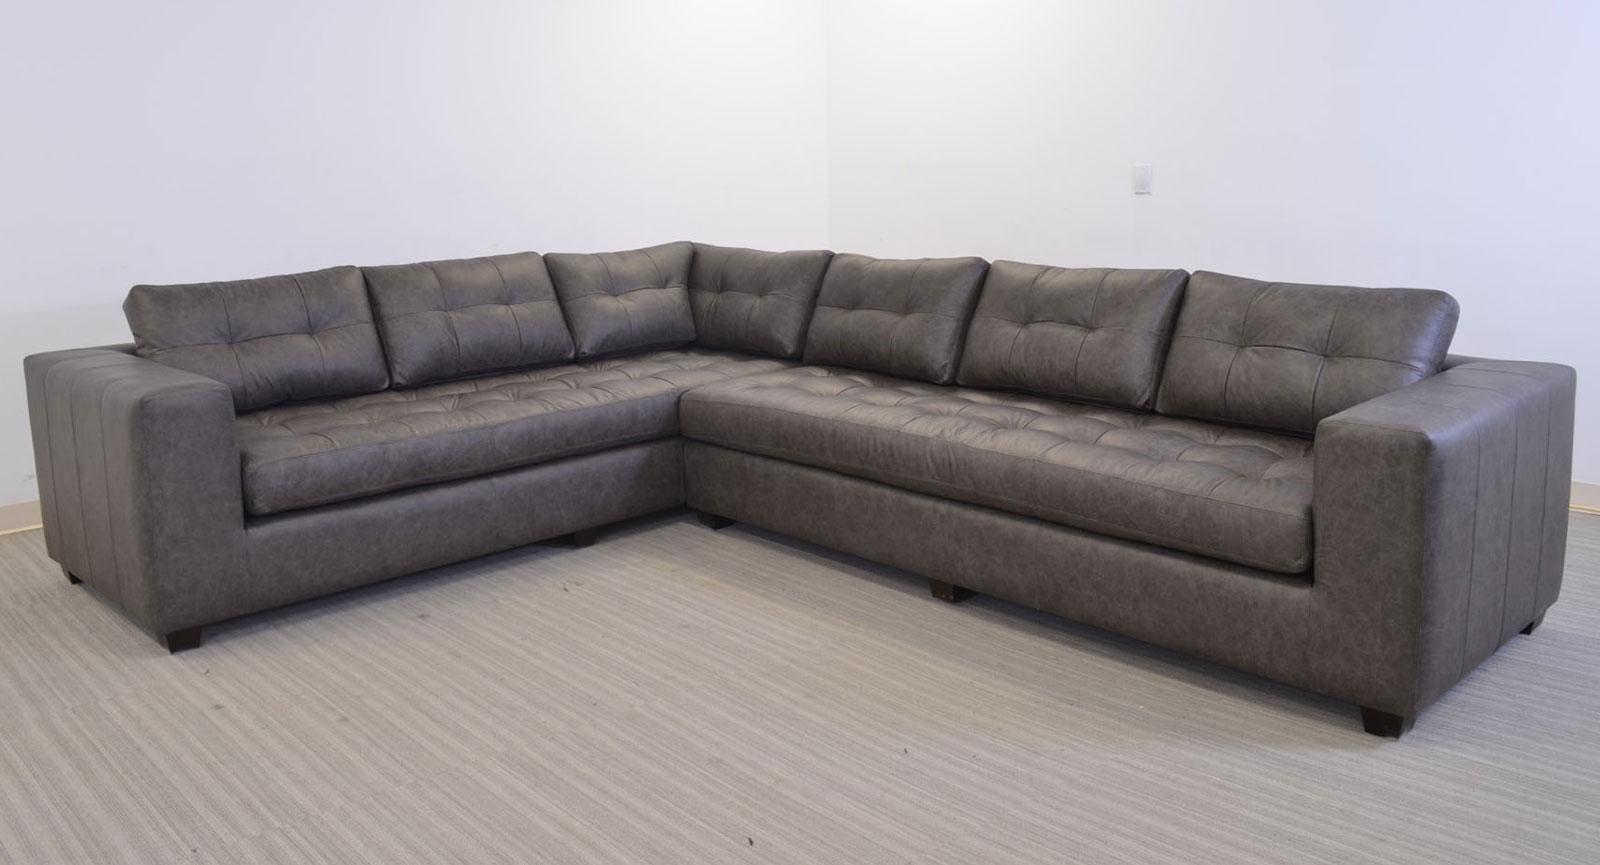 Gev Right Arm Corner Sofa Left Arm Sofa 2